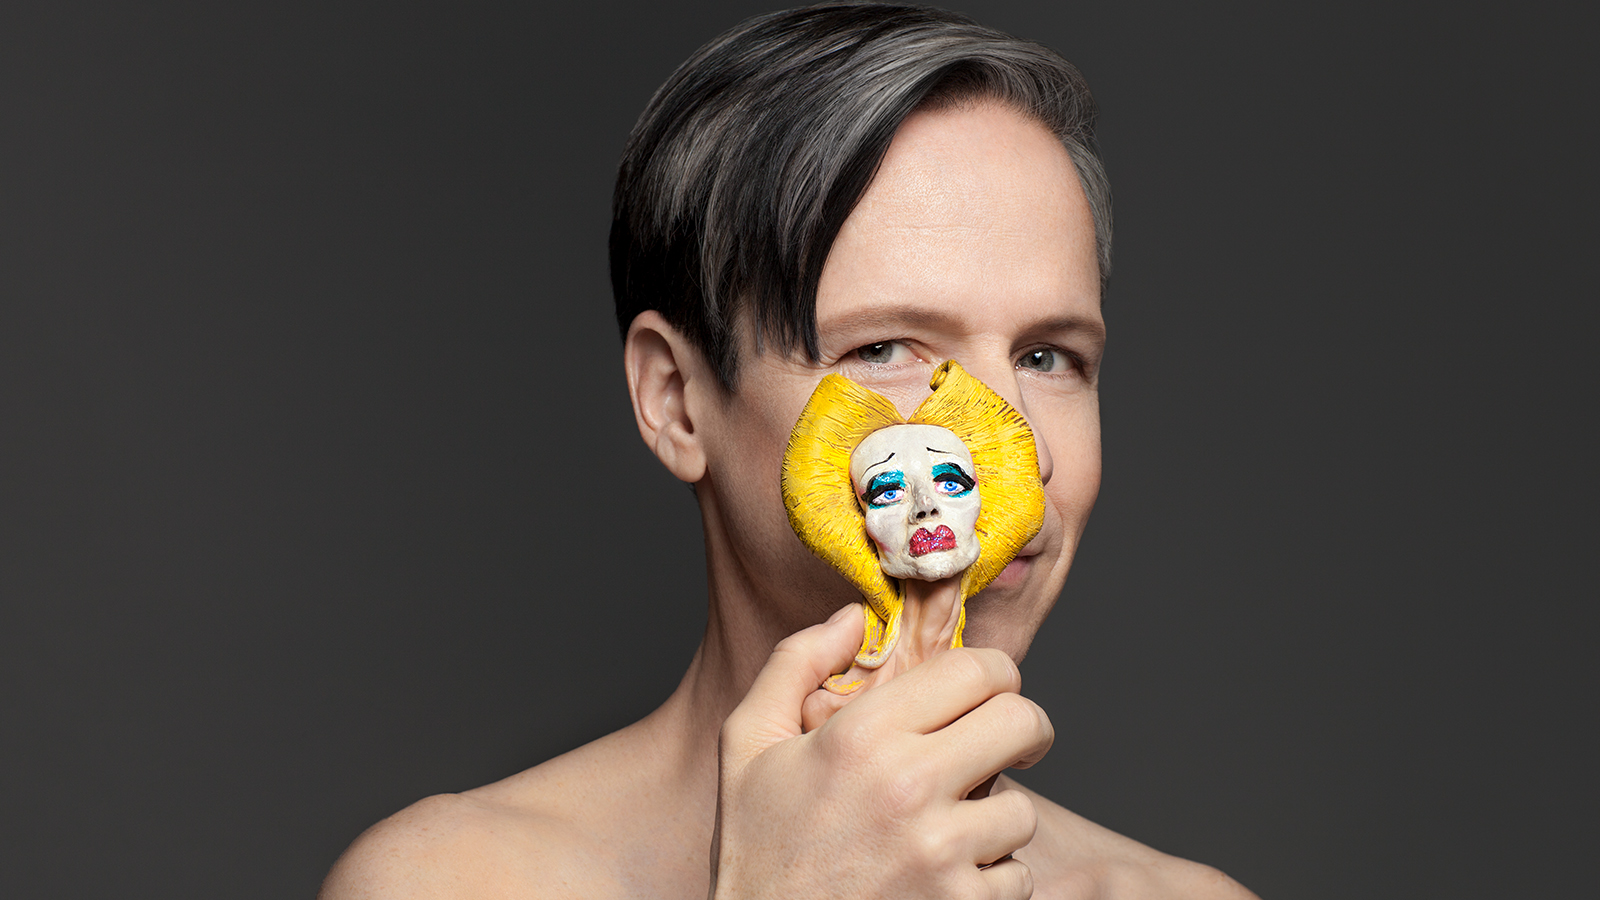 [John Cameron MitchellThe Origin of Love: The Songs and Stories of Hedwig ] Photo by Matthew Placek